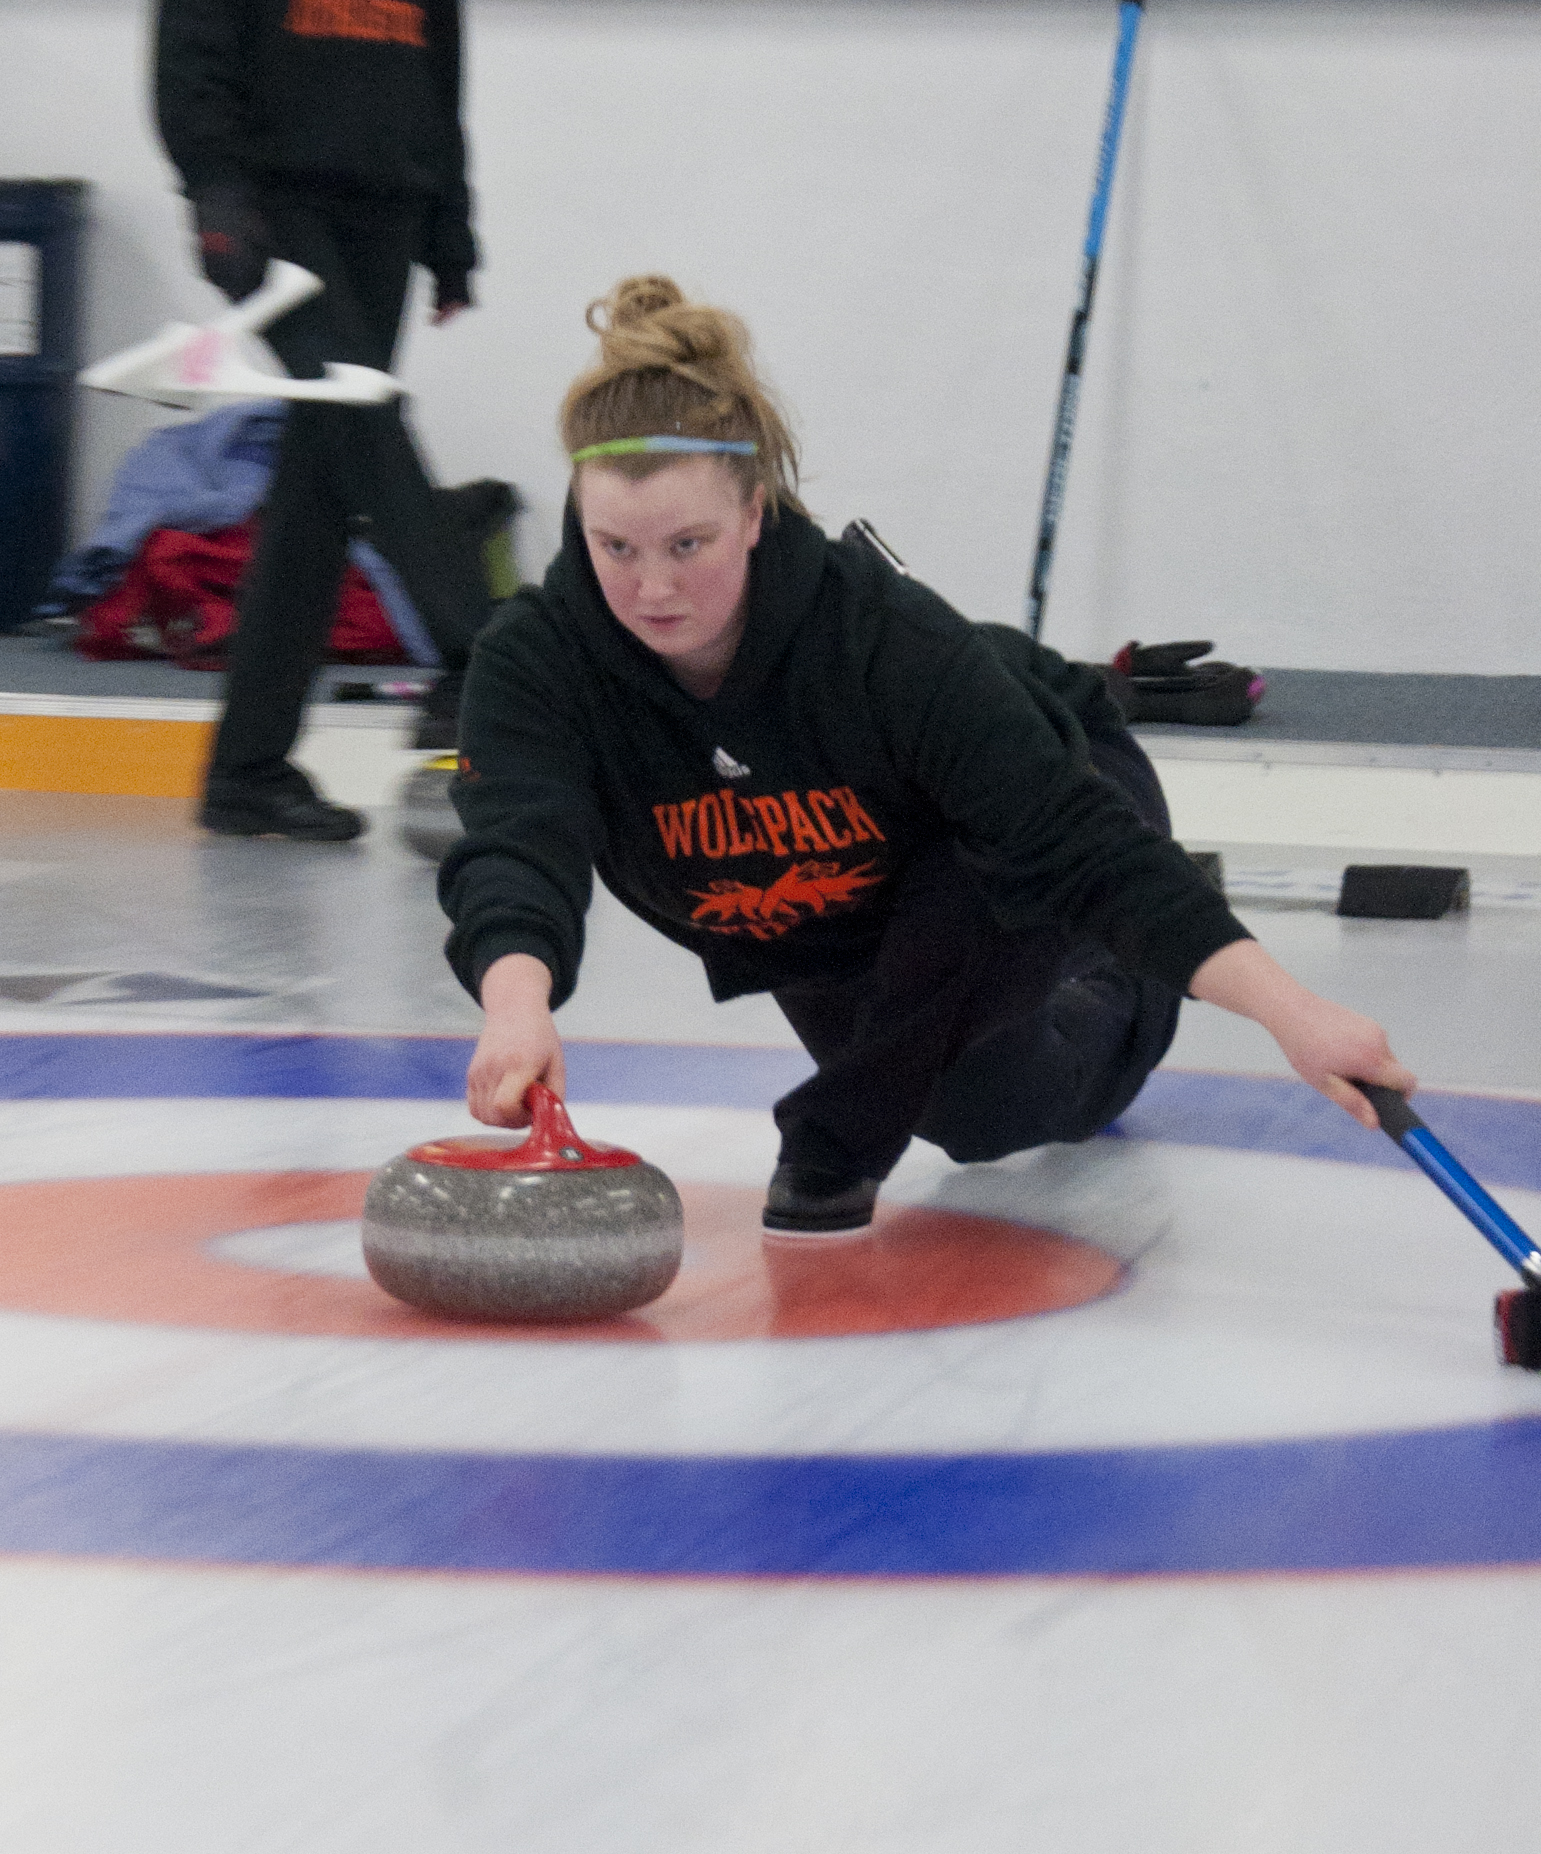 Skip Tiffany Krausher delivers a stone at practice Jan. 16 at the Kamloops Curling Club. - Photo by Adam Williams